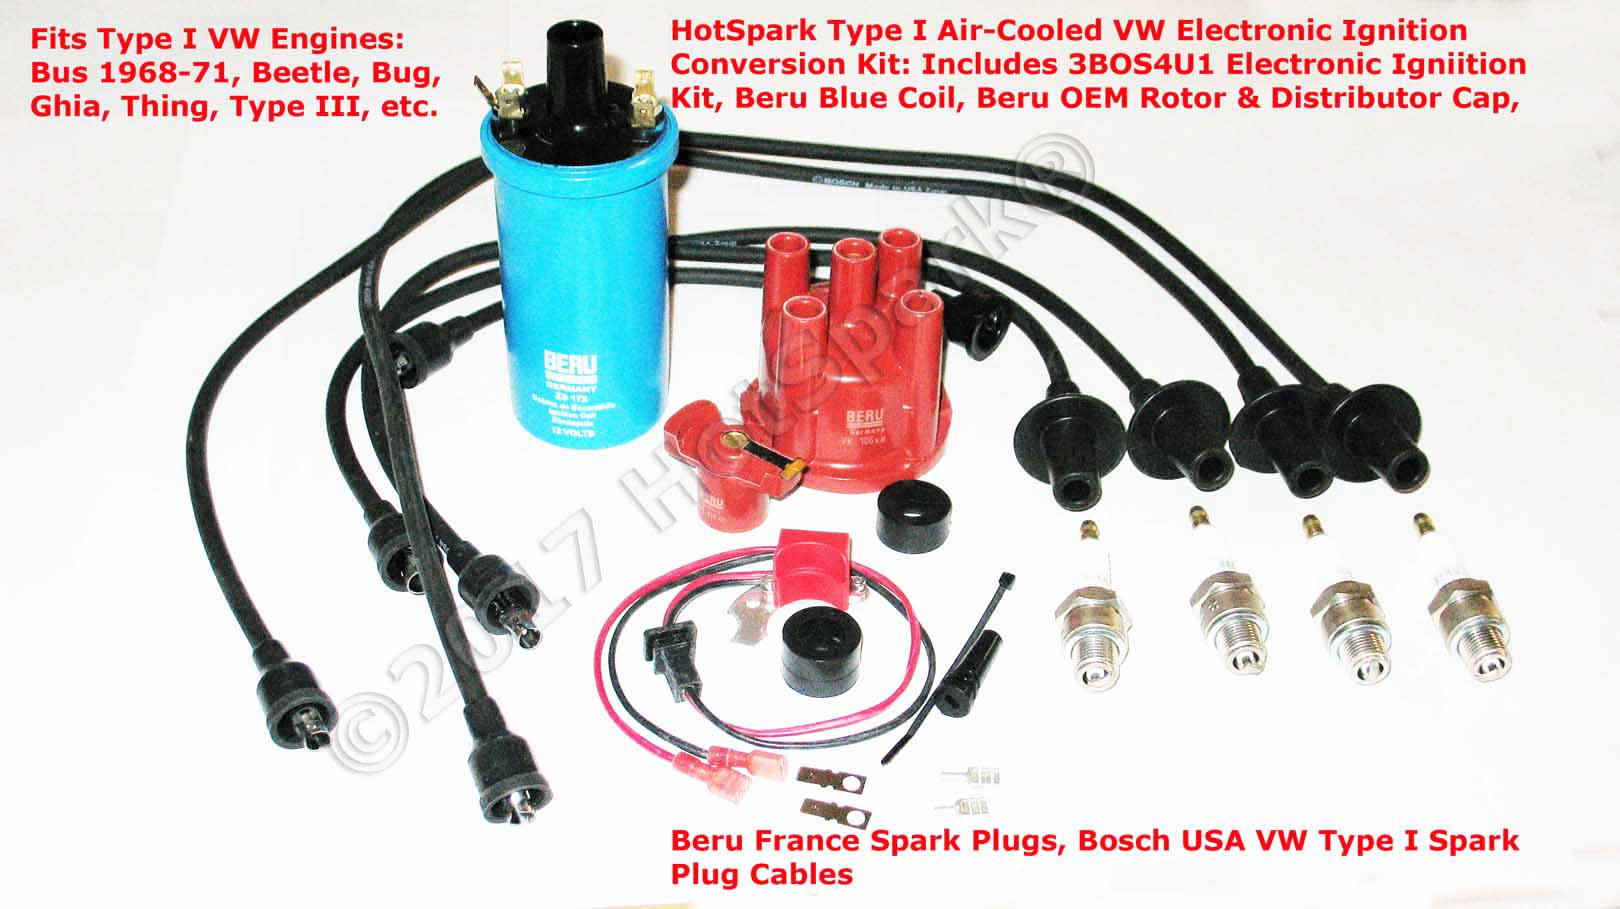 HotSpark 3BOS4U1 Electronic Ignition Conversion Kit plus BeruGermany Blue  Coil, Beru France Spark Plugs,